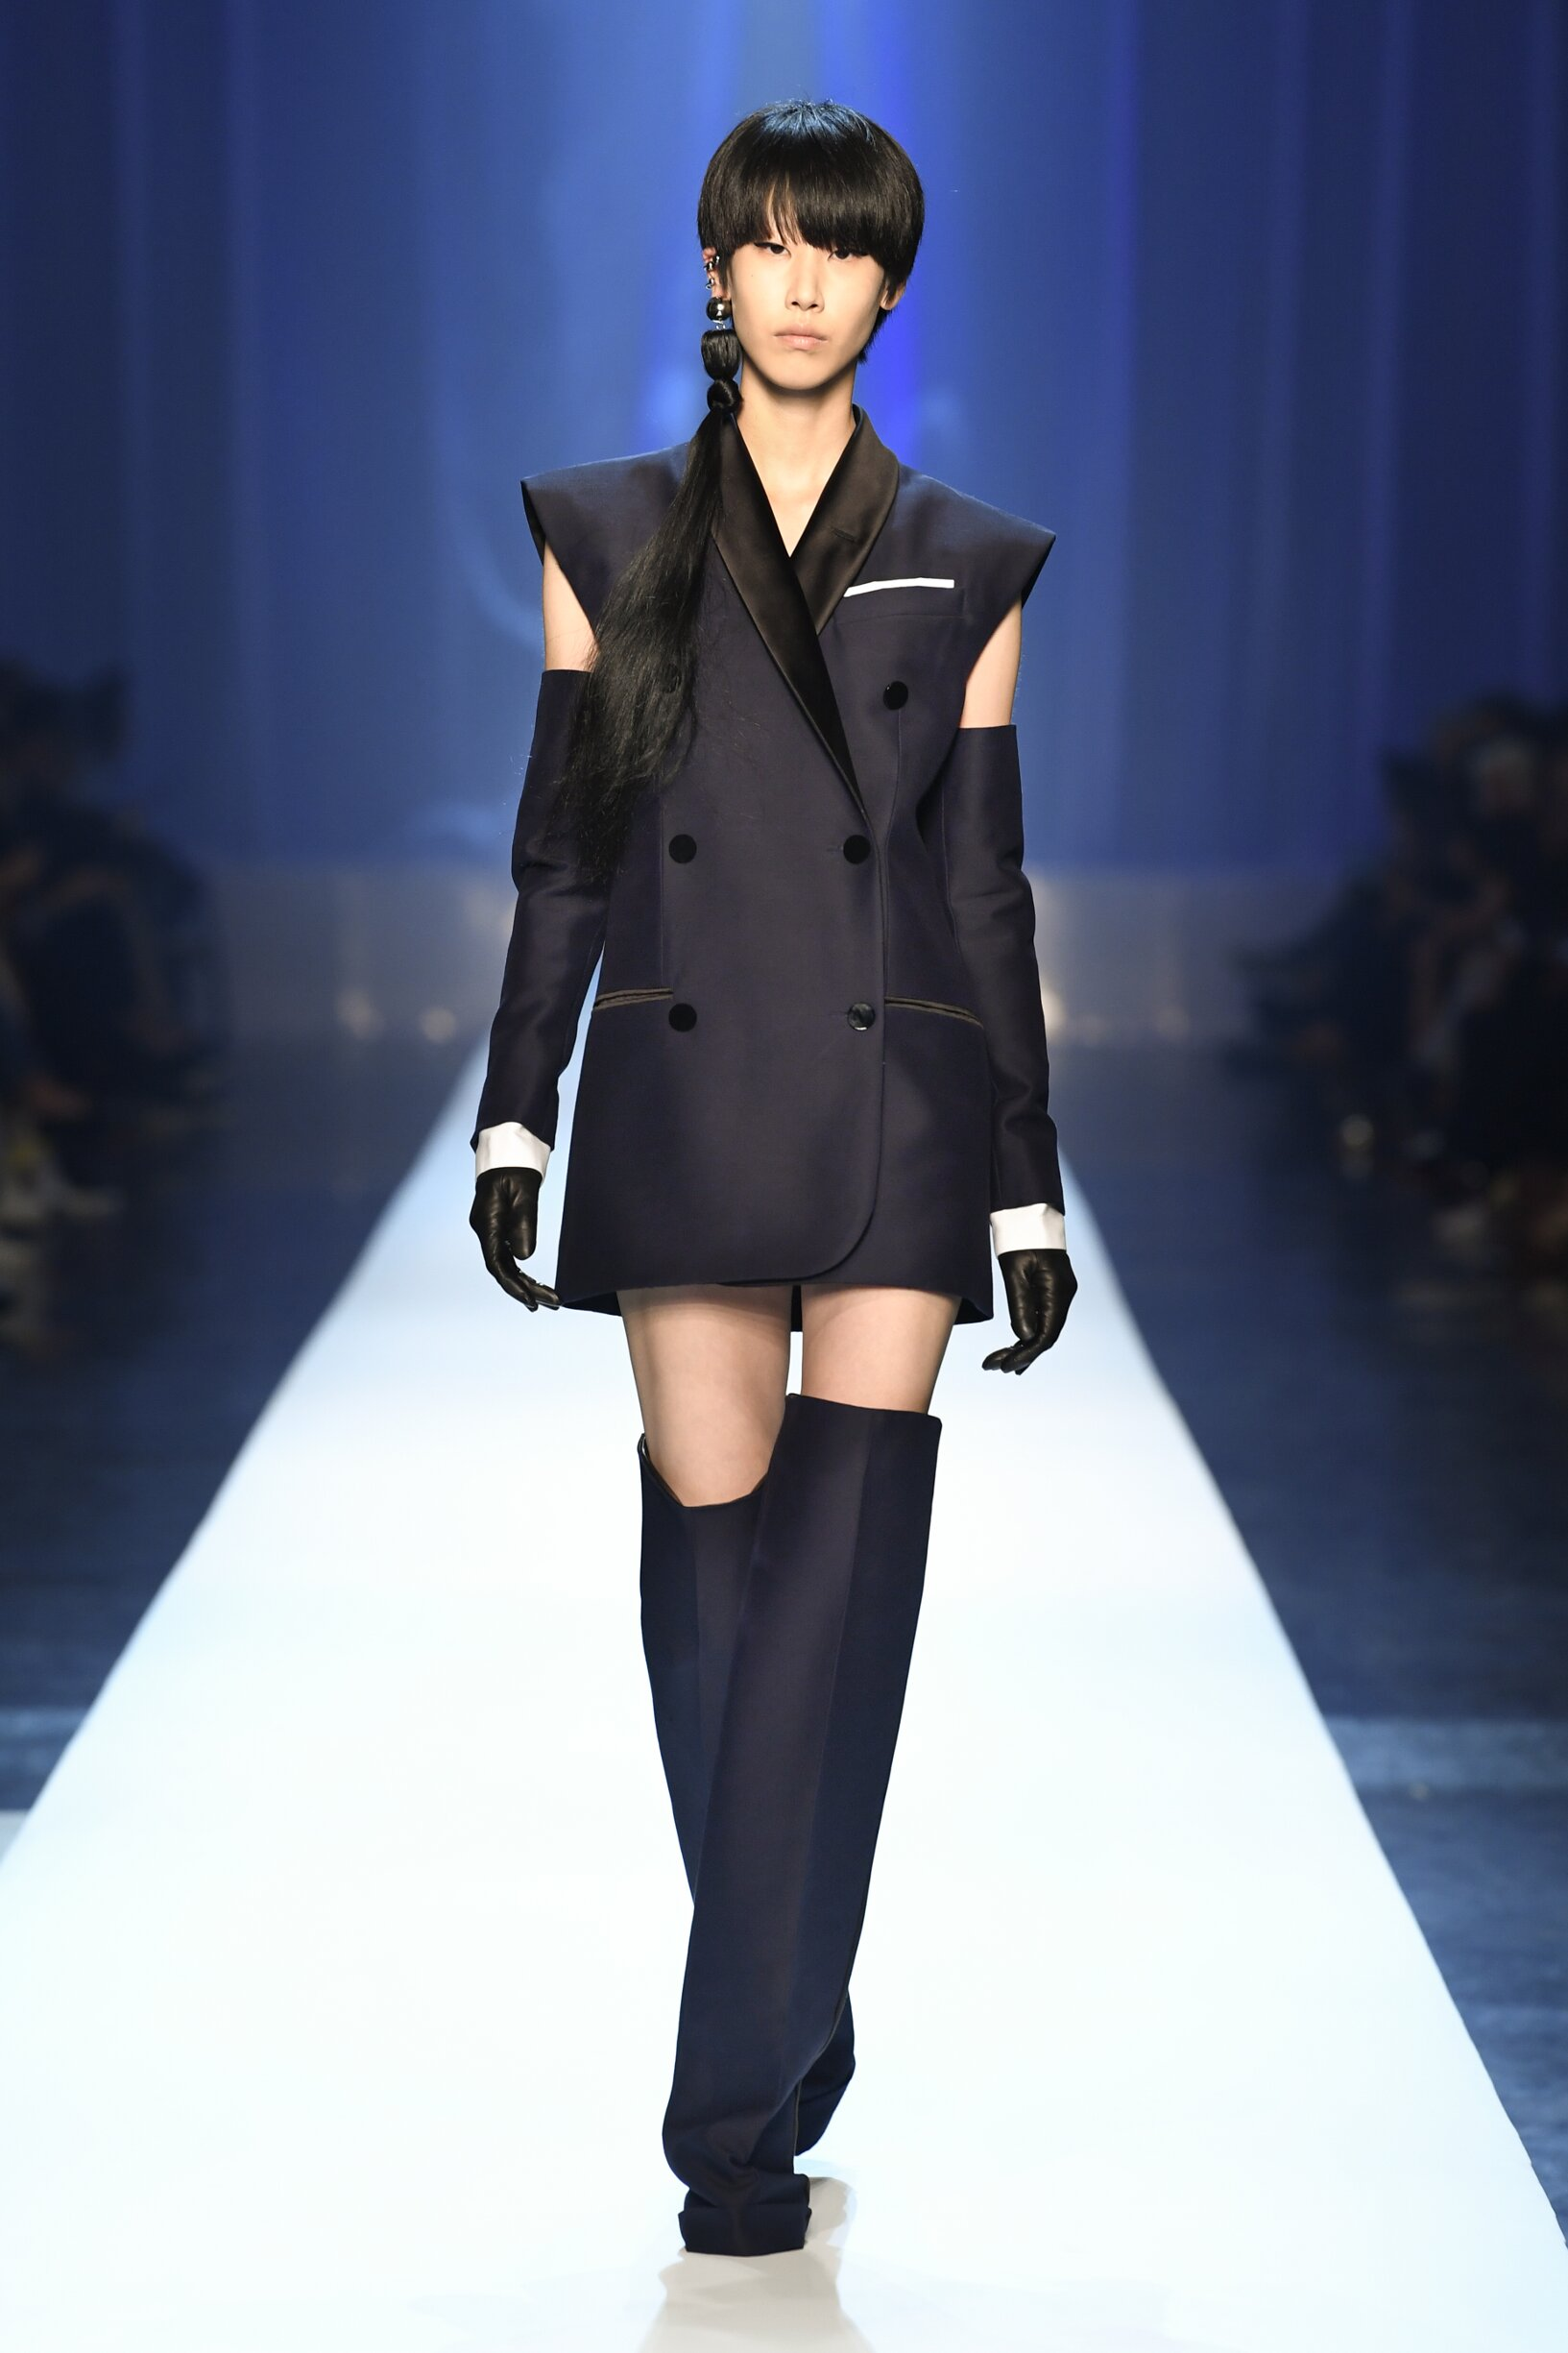 Jean-Paul Gaultier Haute Couture Womenswear Fashion Show